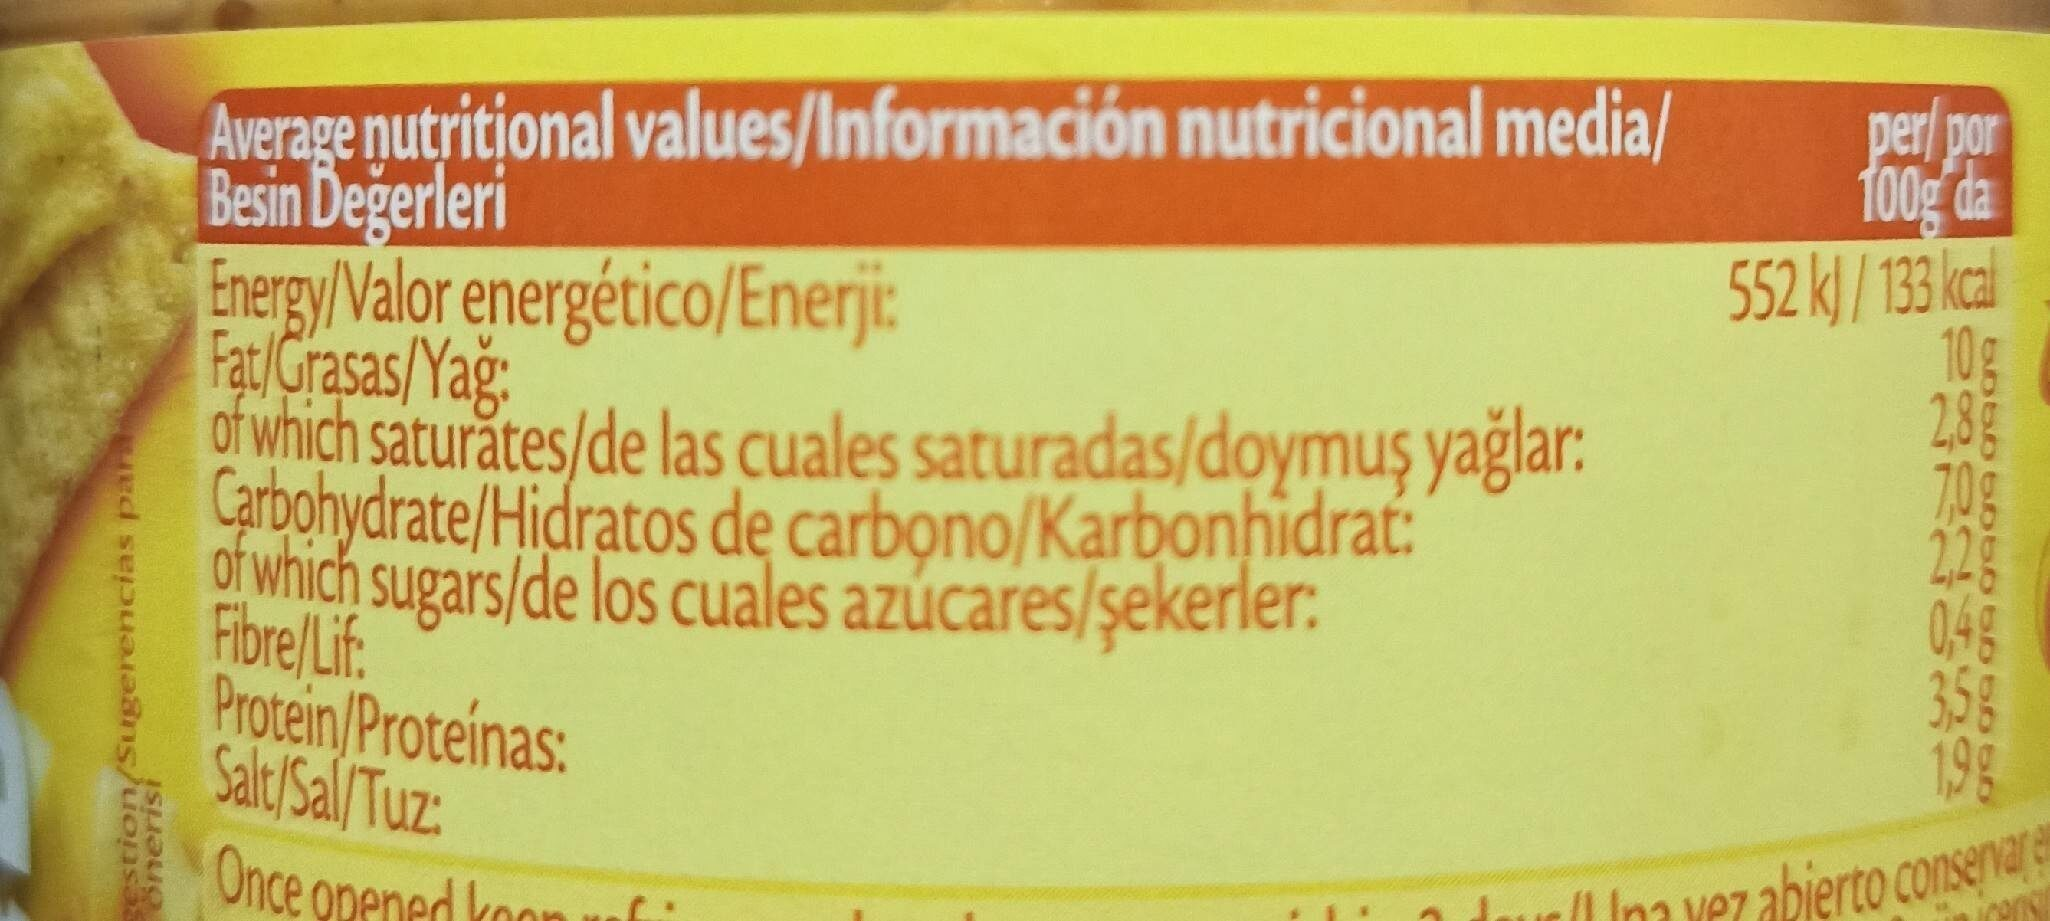 Cheese Salsa Con Queso - Informations nutritionnelles - fr